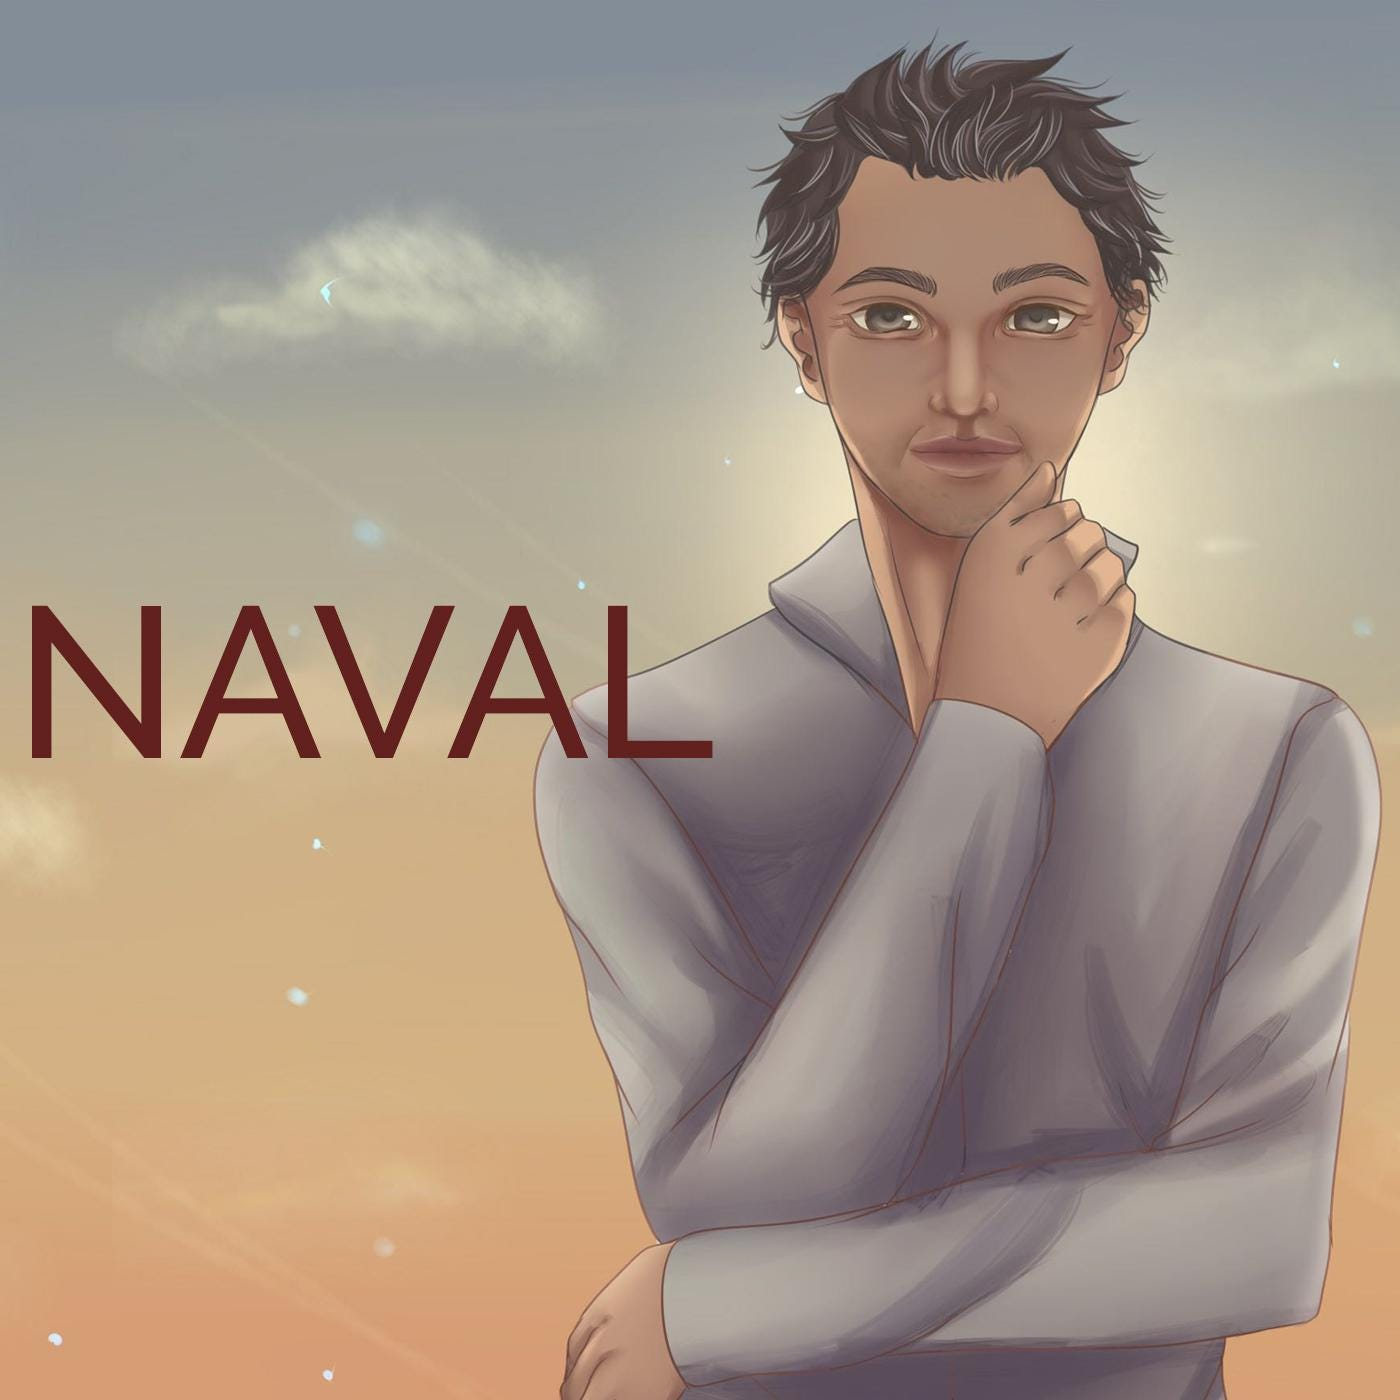 Image result for naval book